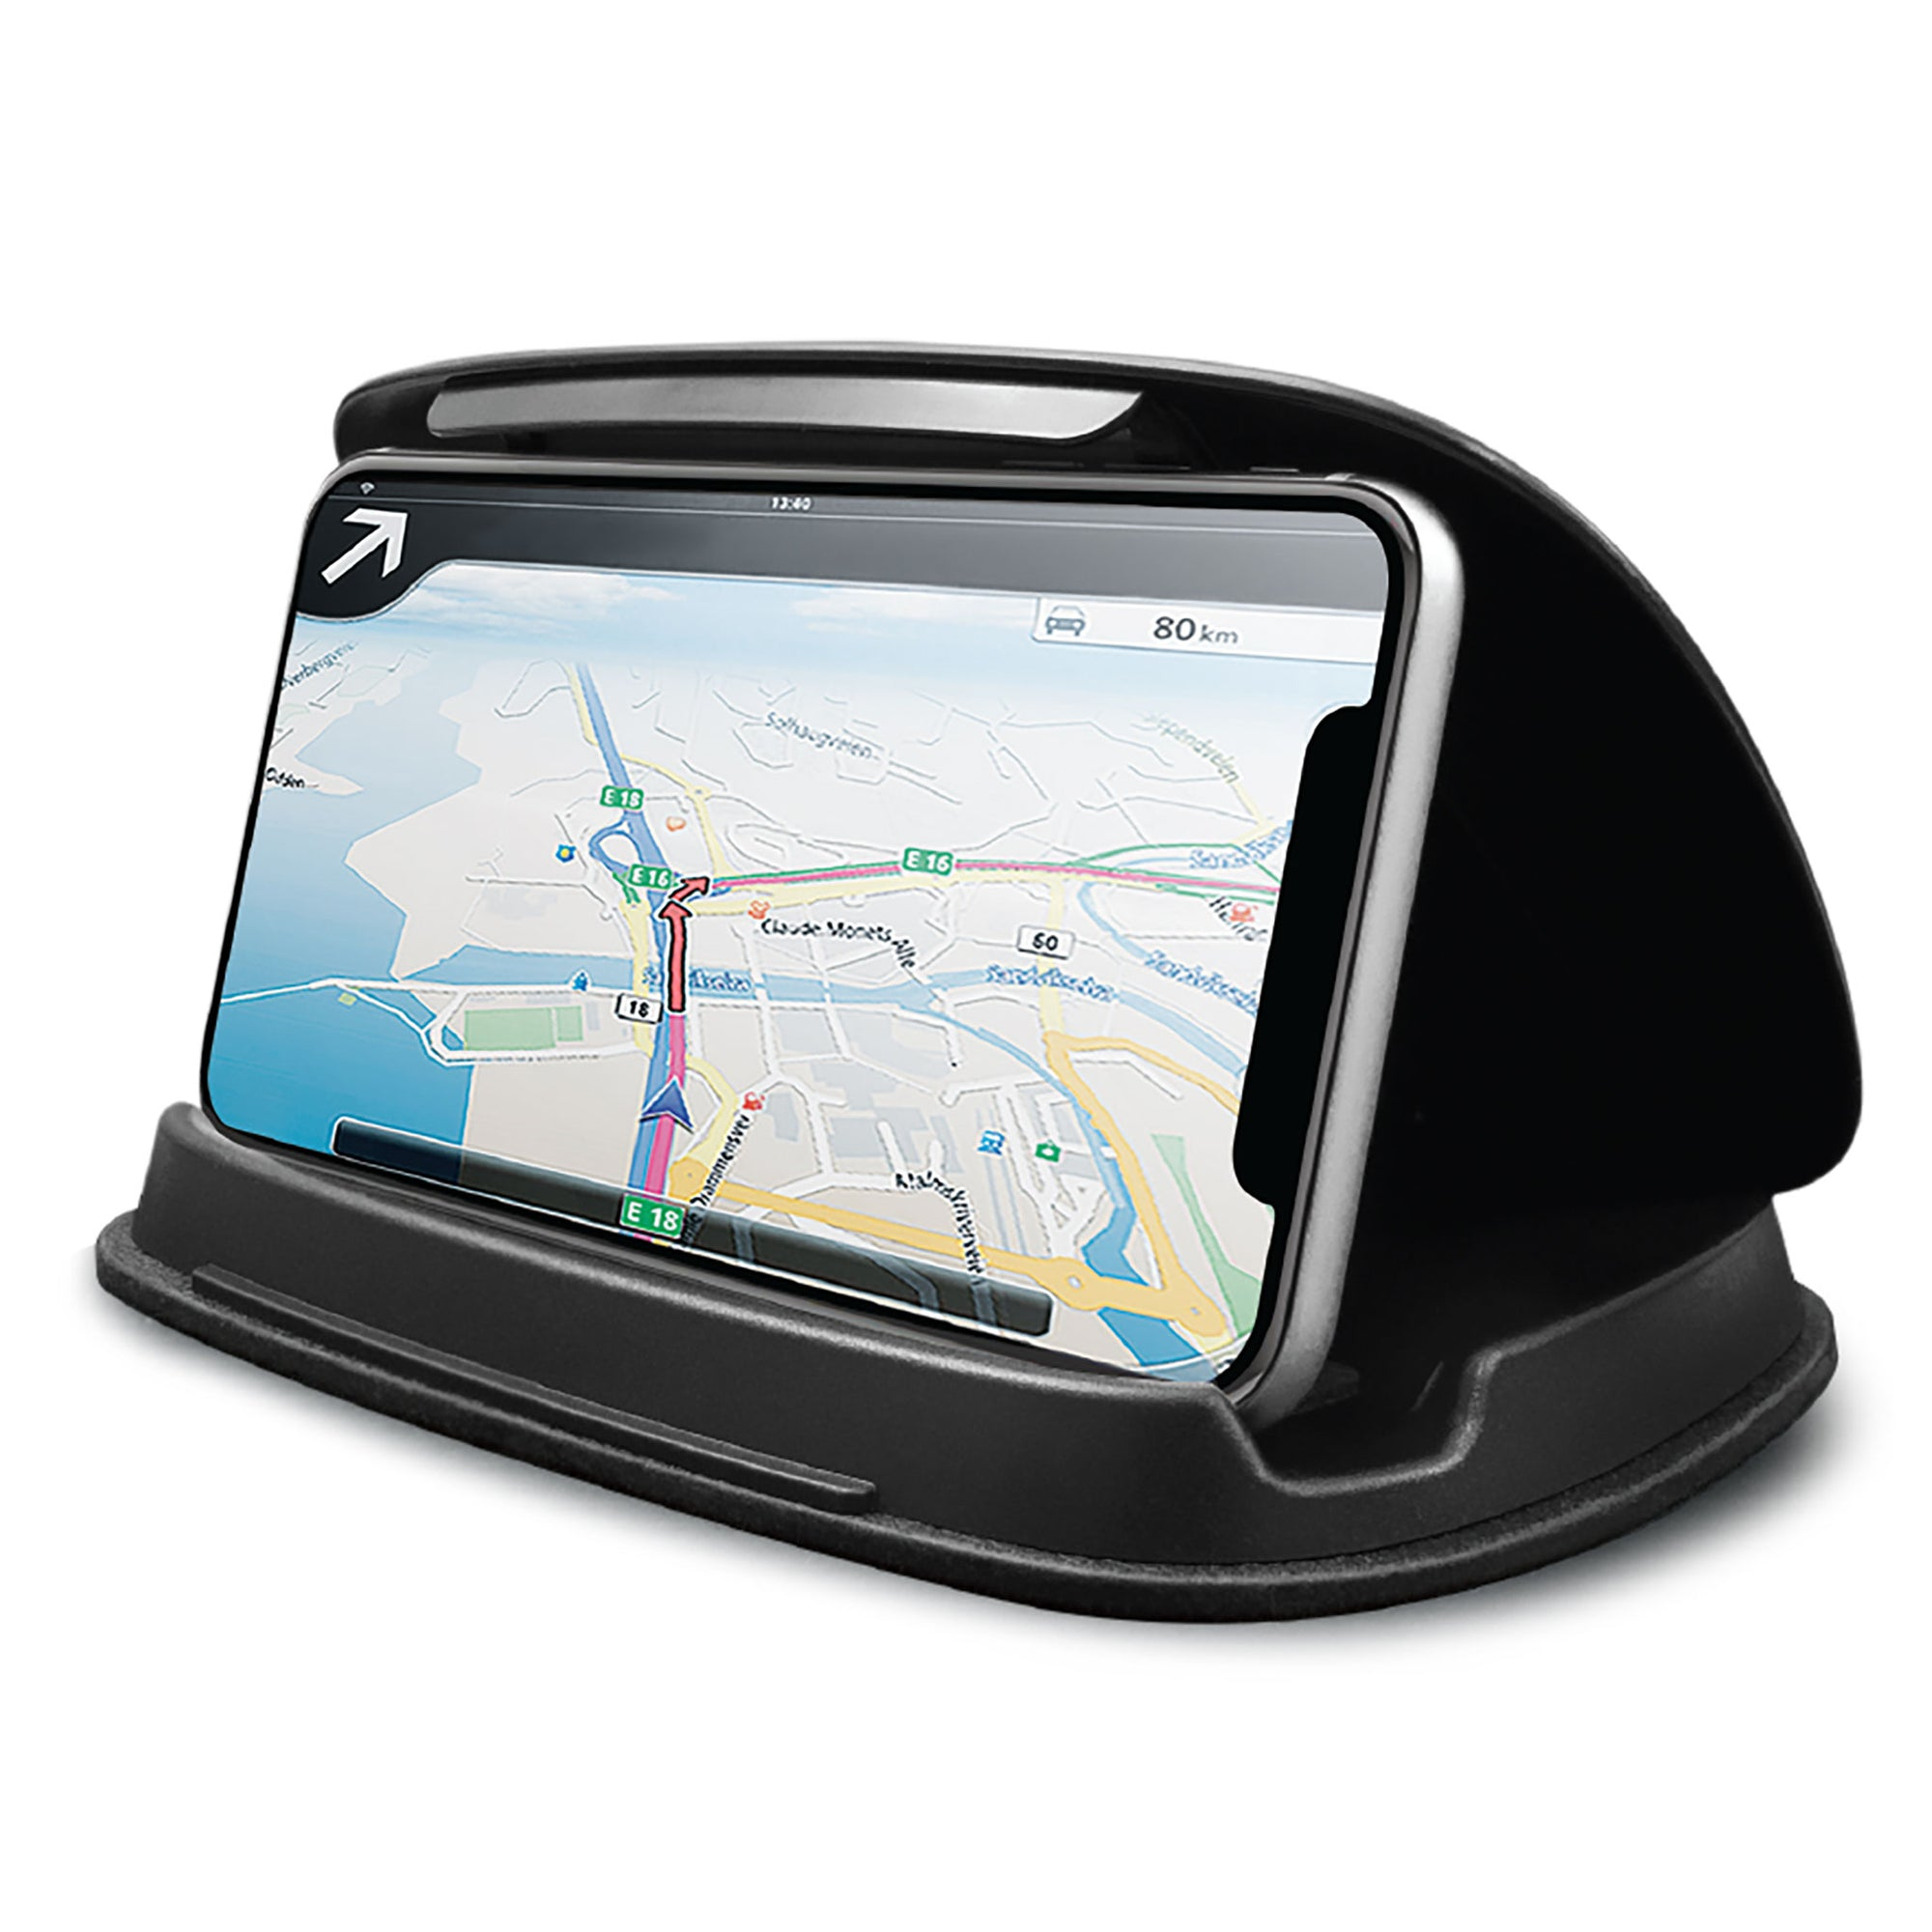 Catcher S65 Dashboard Dock Mount